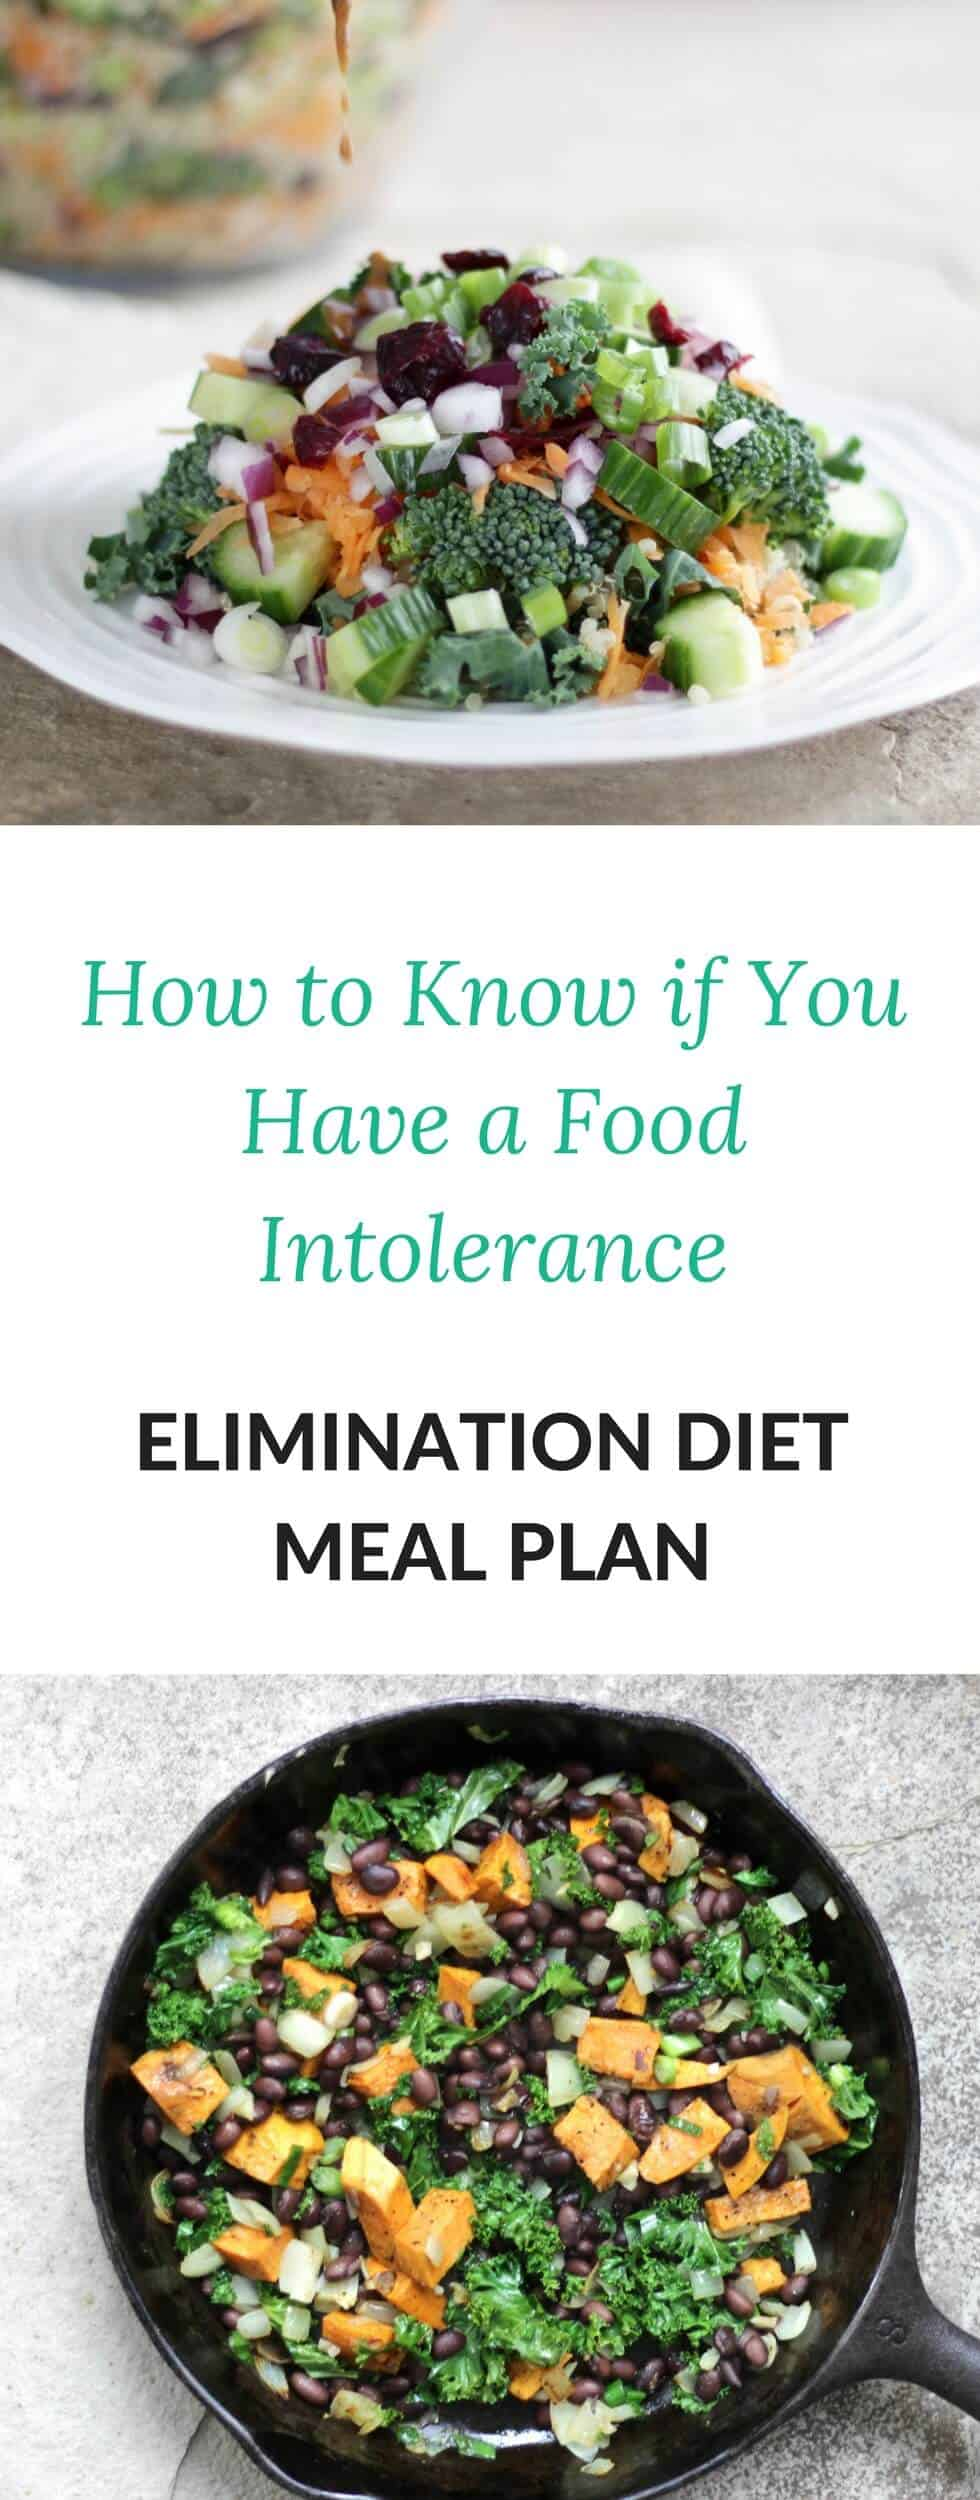 How to Know if You Have a Food Intolerance